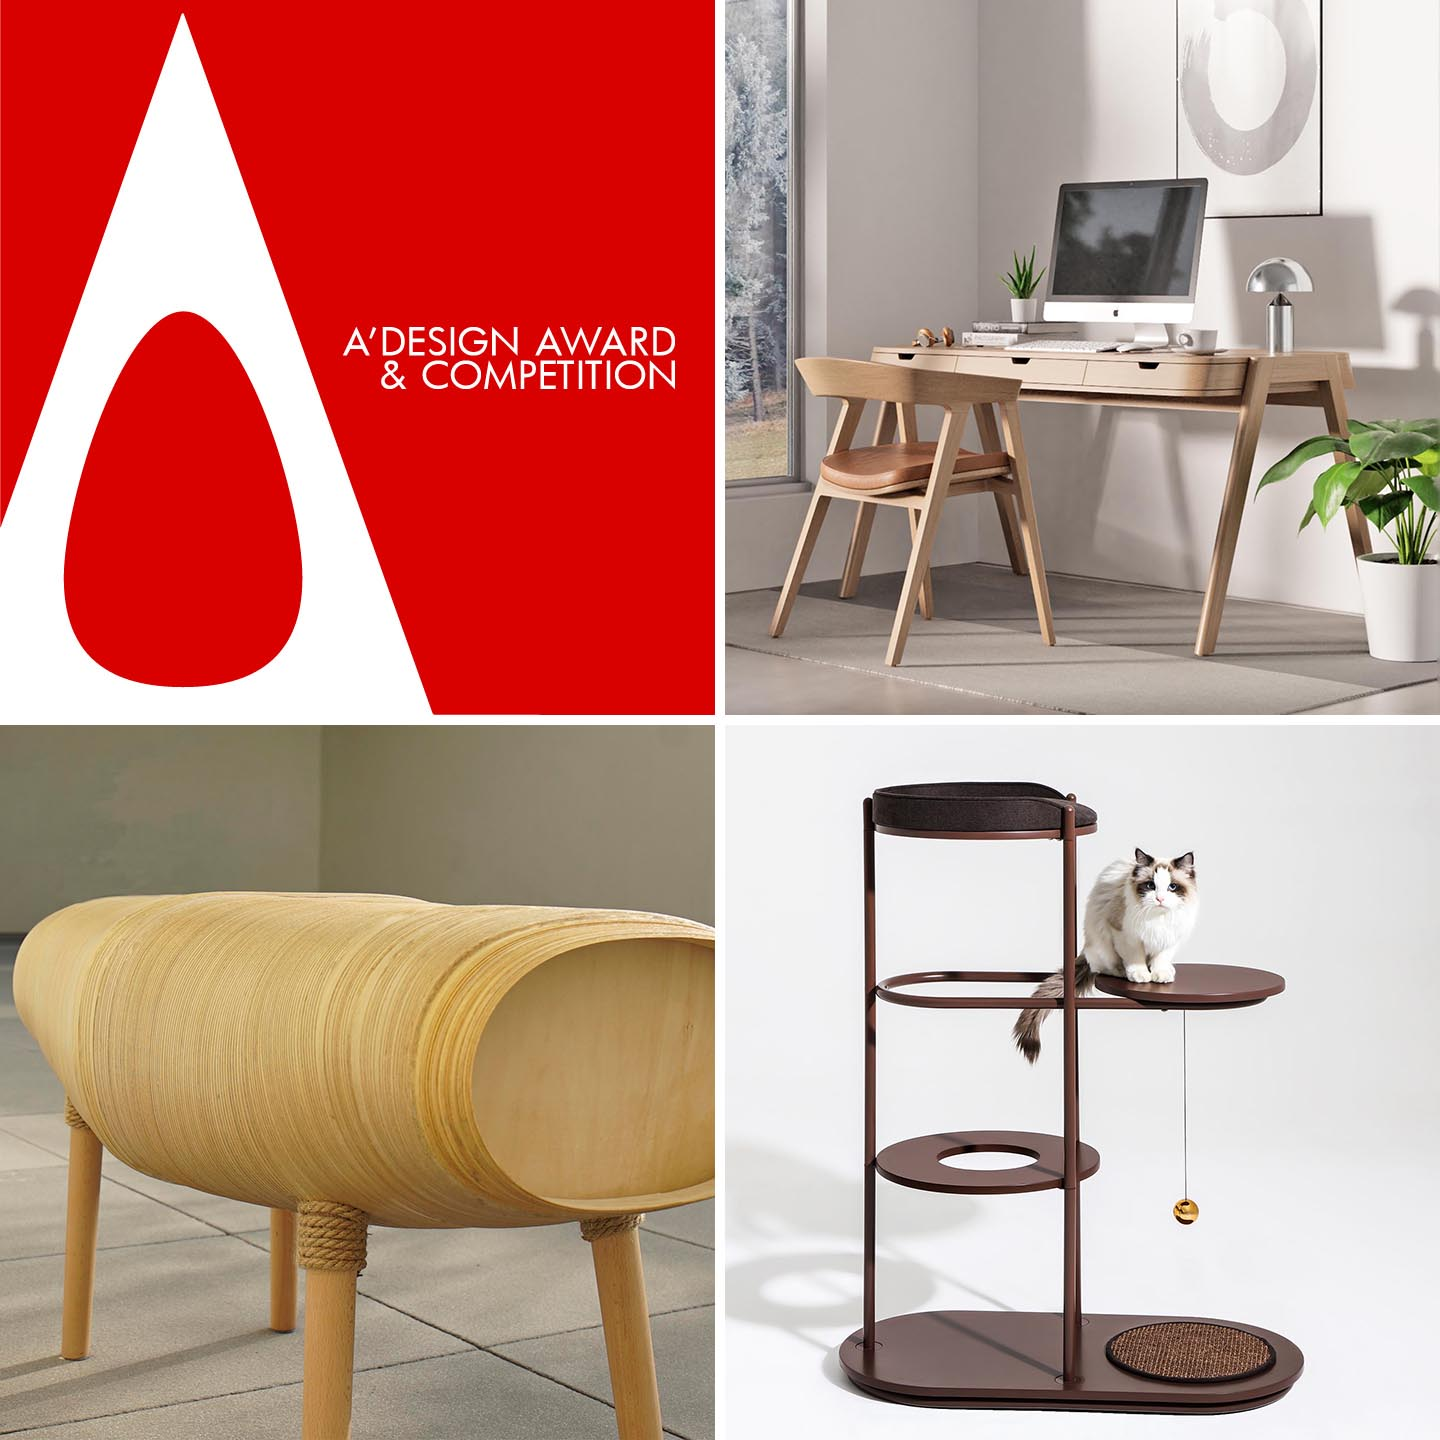 A Design Award and Competition - furniture designs.